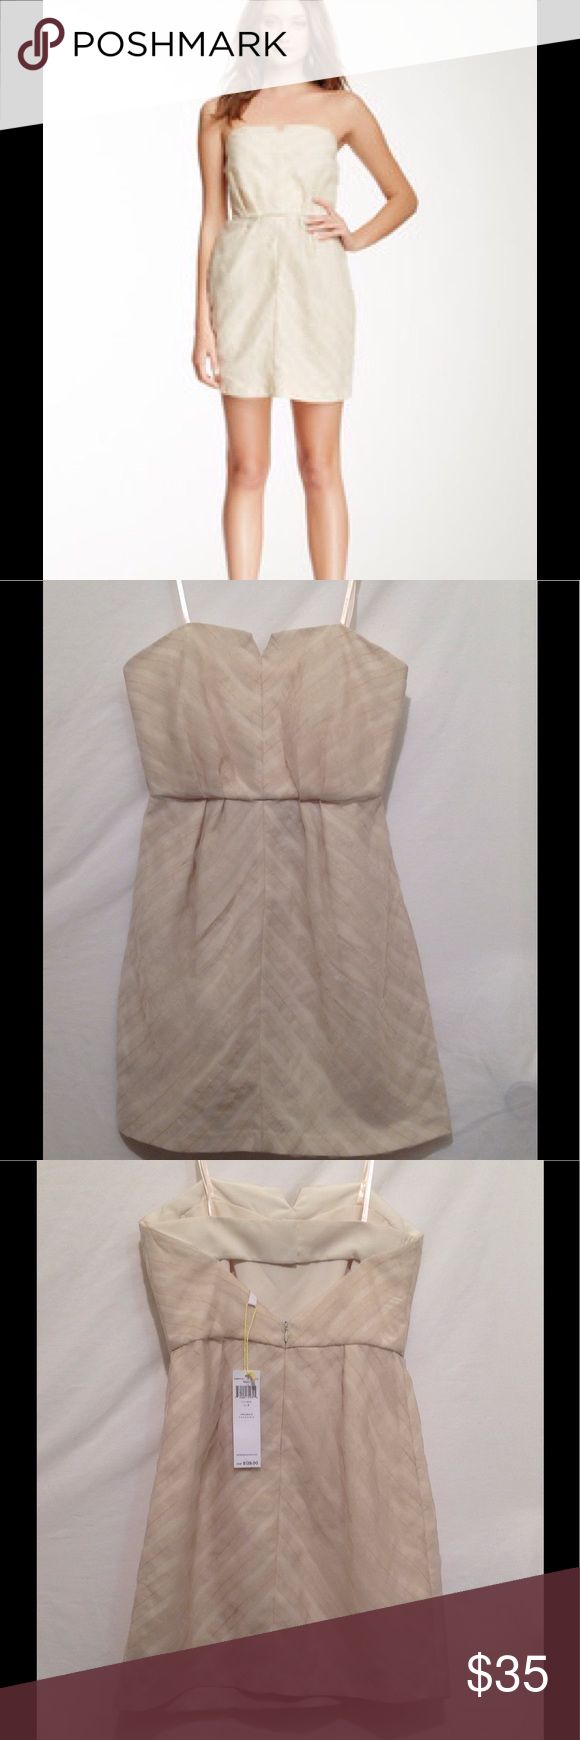 """BCBGeneration strapless beige mini dress Ivory/ Cream/ Beige Strapless Cocktail/Mini Dress Size 2 New With Tags.       Measurements are:  Bust: 31"""" Waist: 26"""" Hips: 35"""", and measures 24"""" from top to bottom hem BCBGeneration Dresses Mini"""